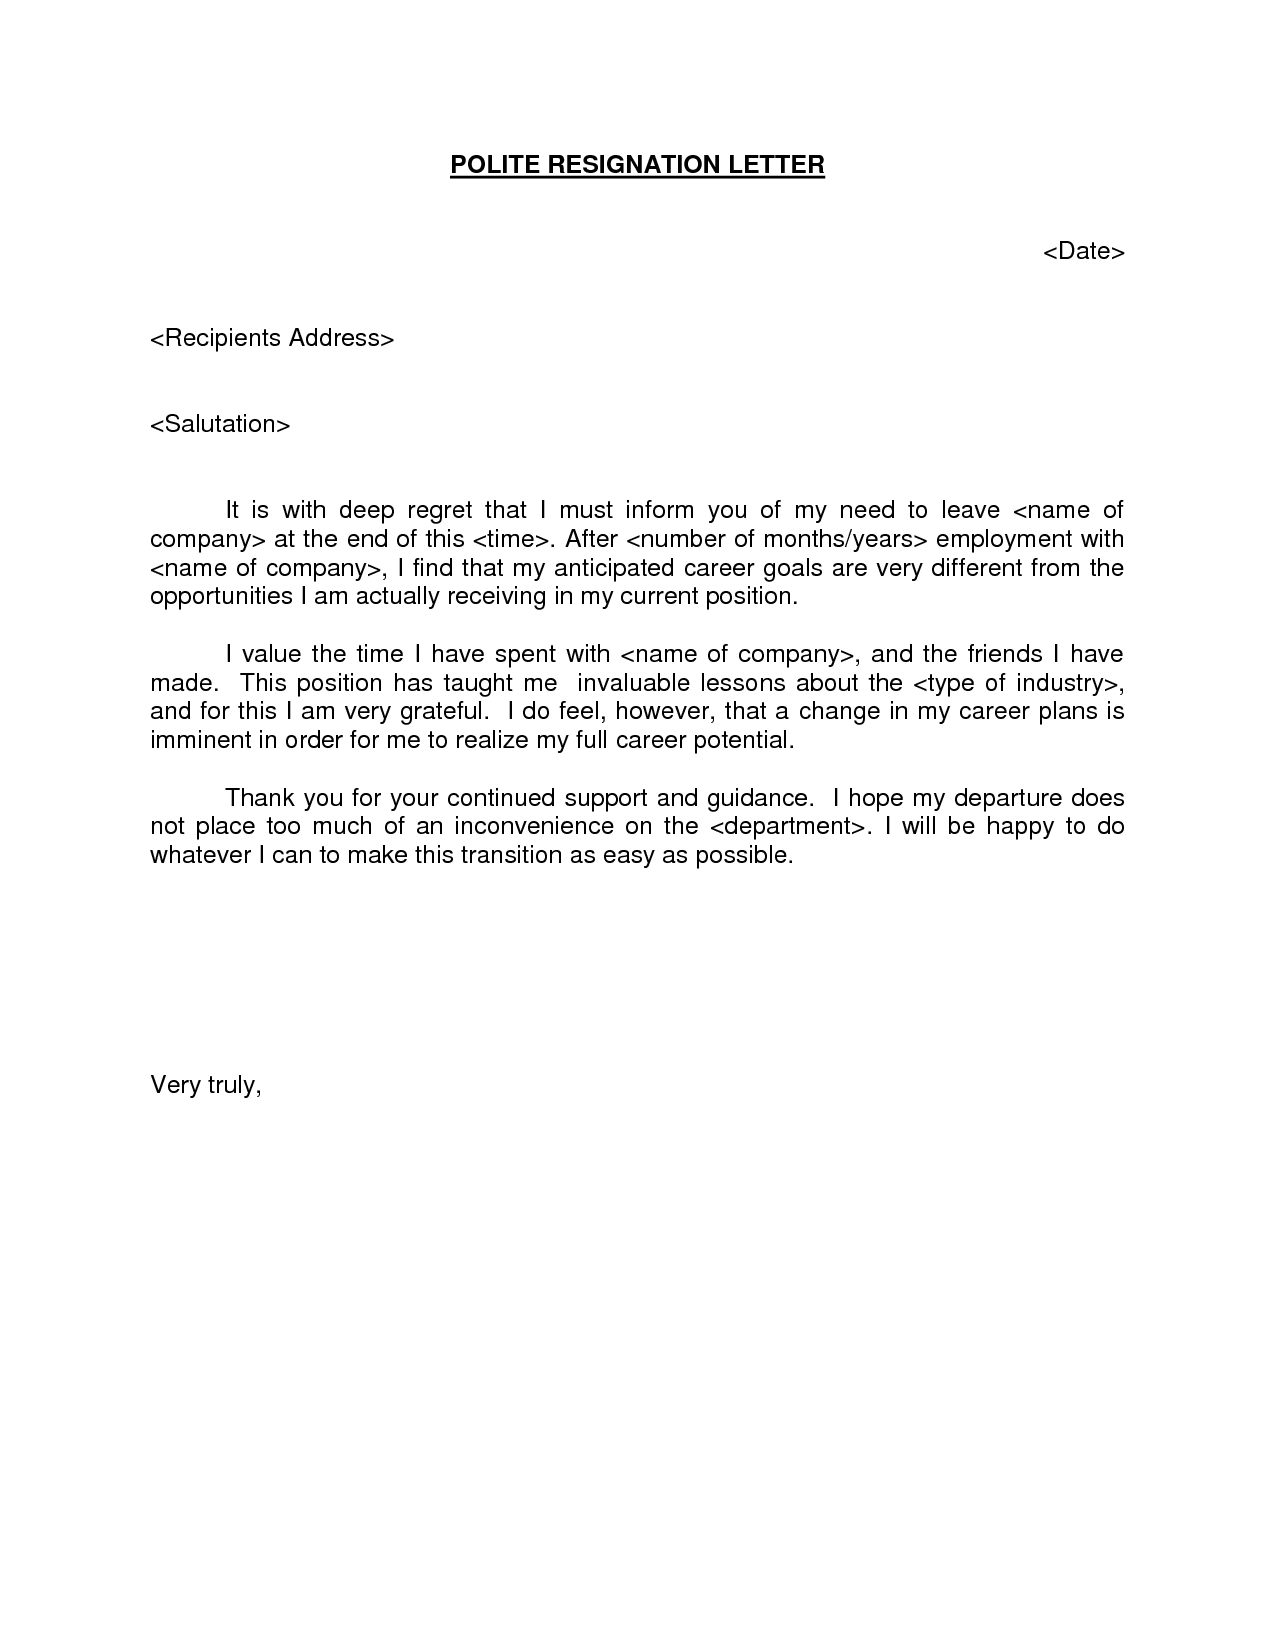 Resignation letter letter of resignation meaning effective resignation letter letter of resignation meaning effective immediately and simple expocarfo Choice Image